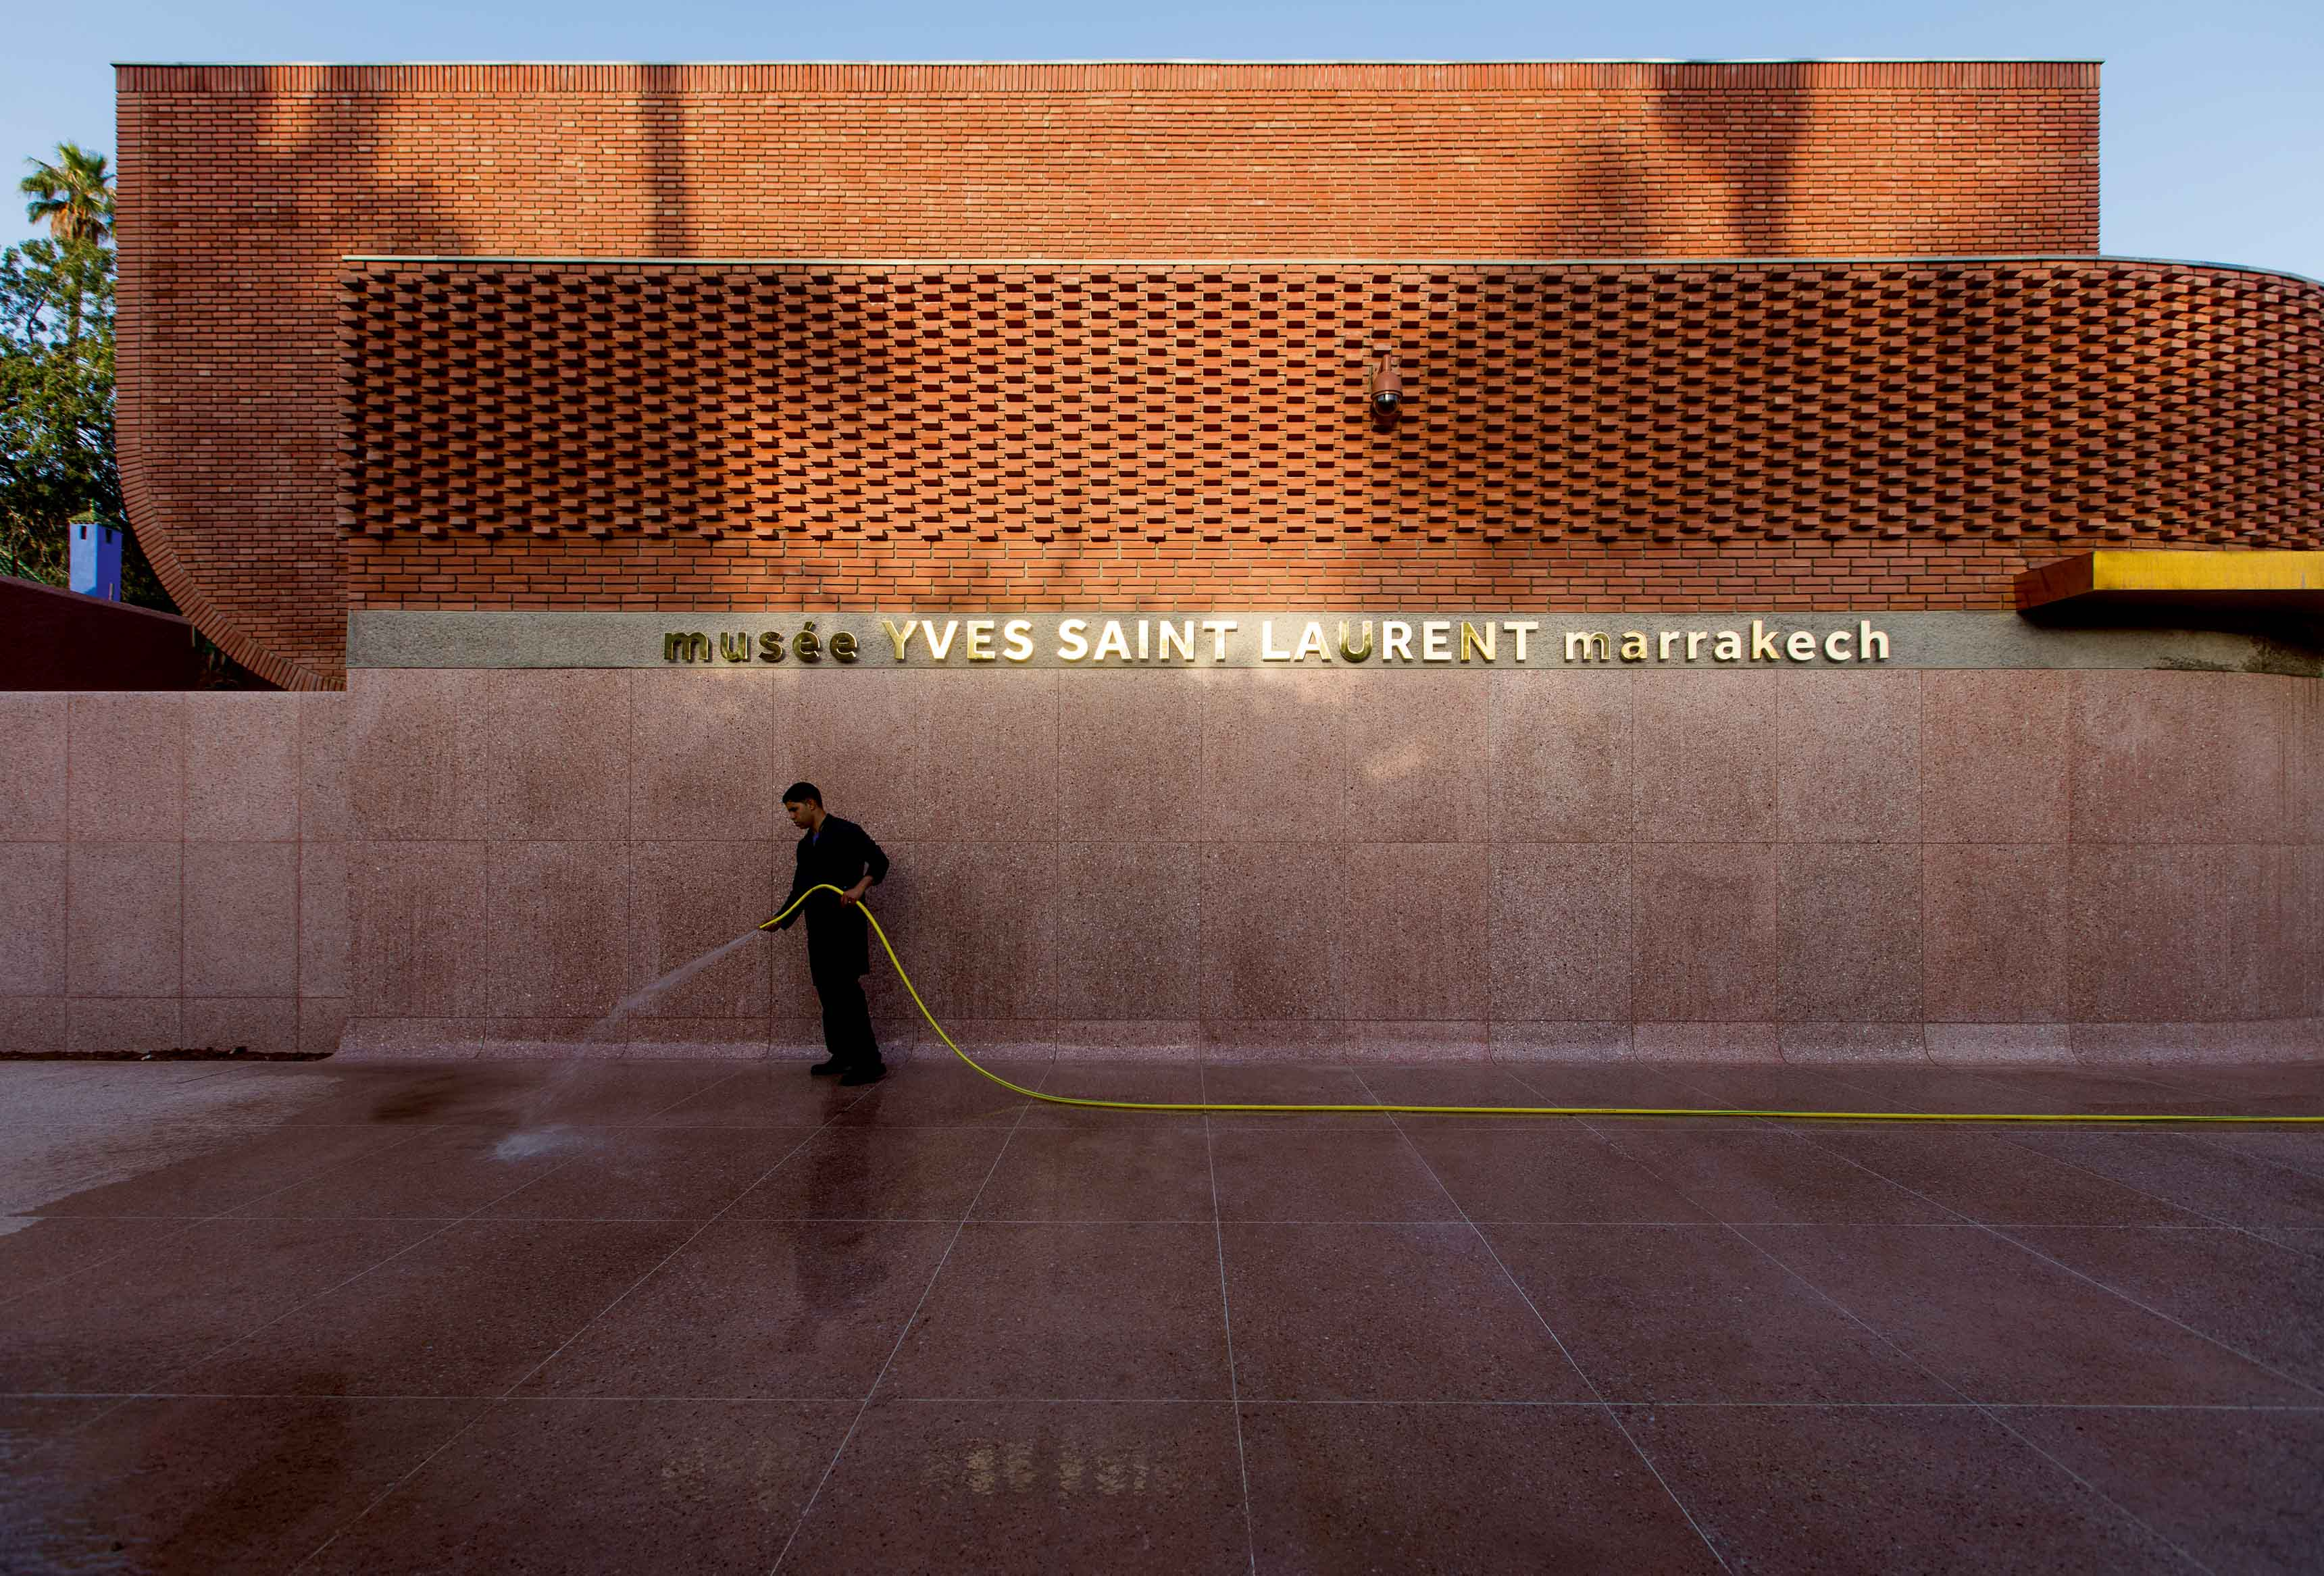 Yves Saint Laurent museum, Marrakech